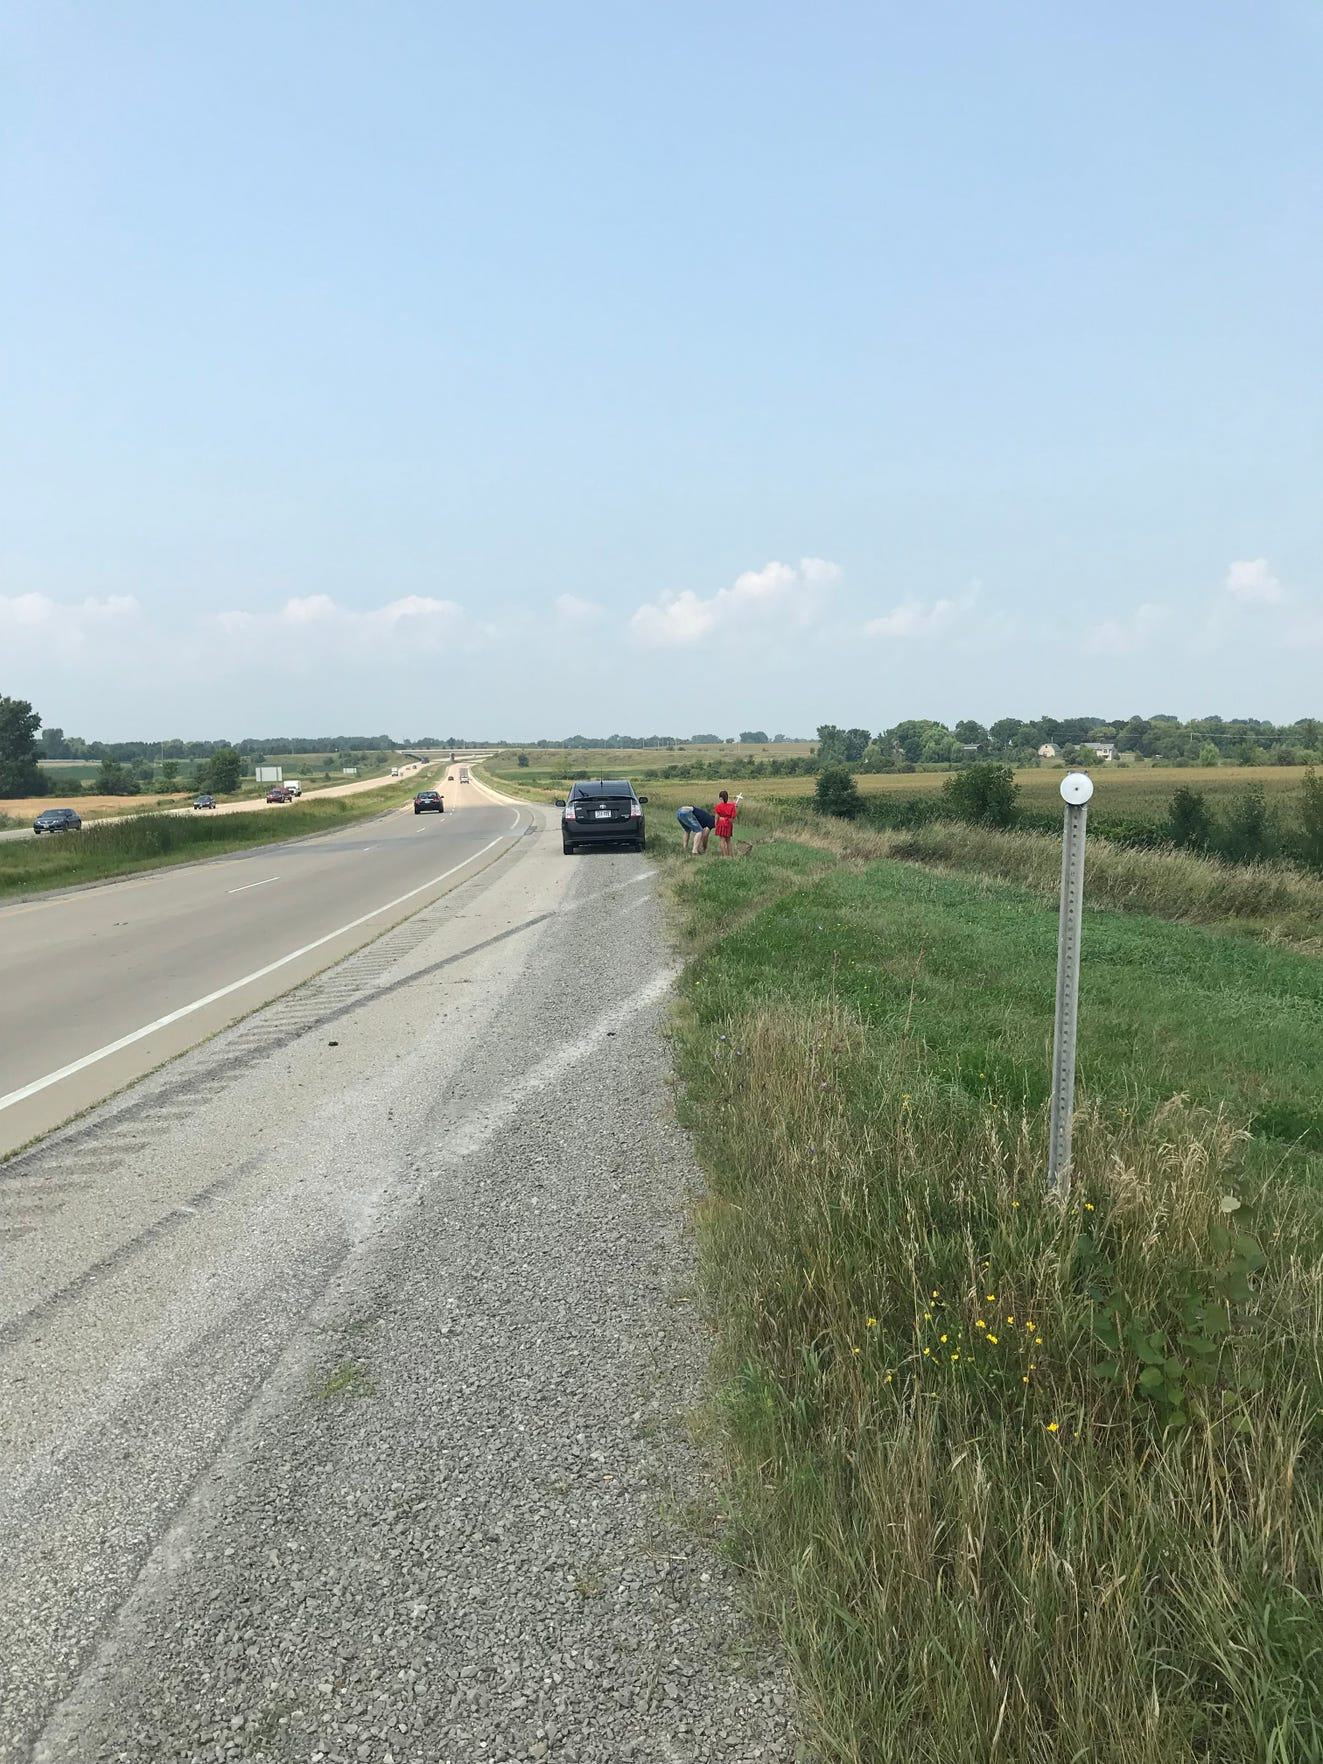 The tire tracks from Brownell's crashed Ford Mustang convertible were still visible on U.S. 45 days after the crash.